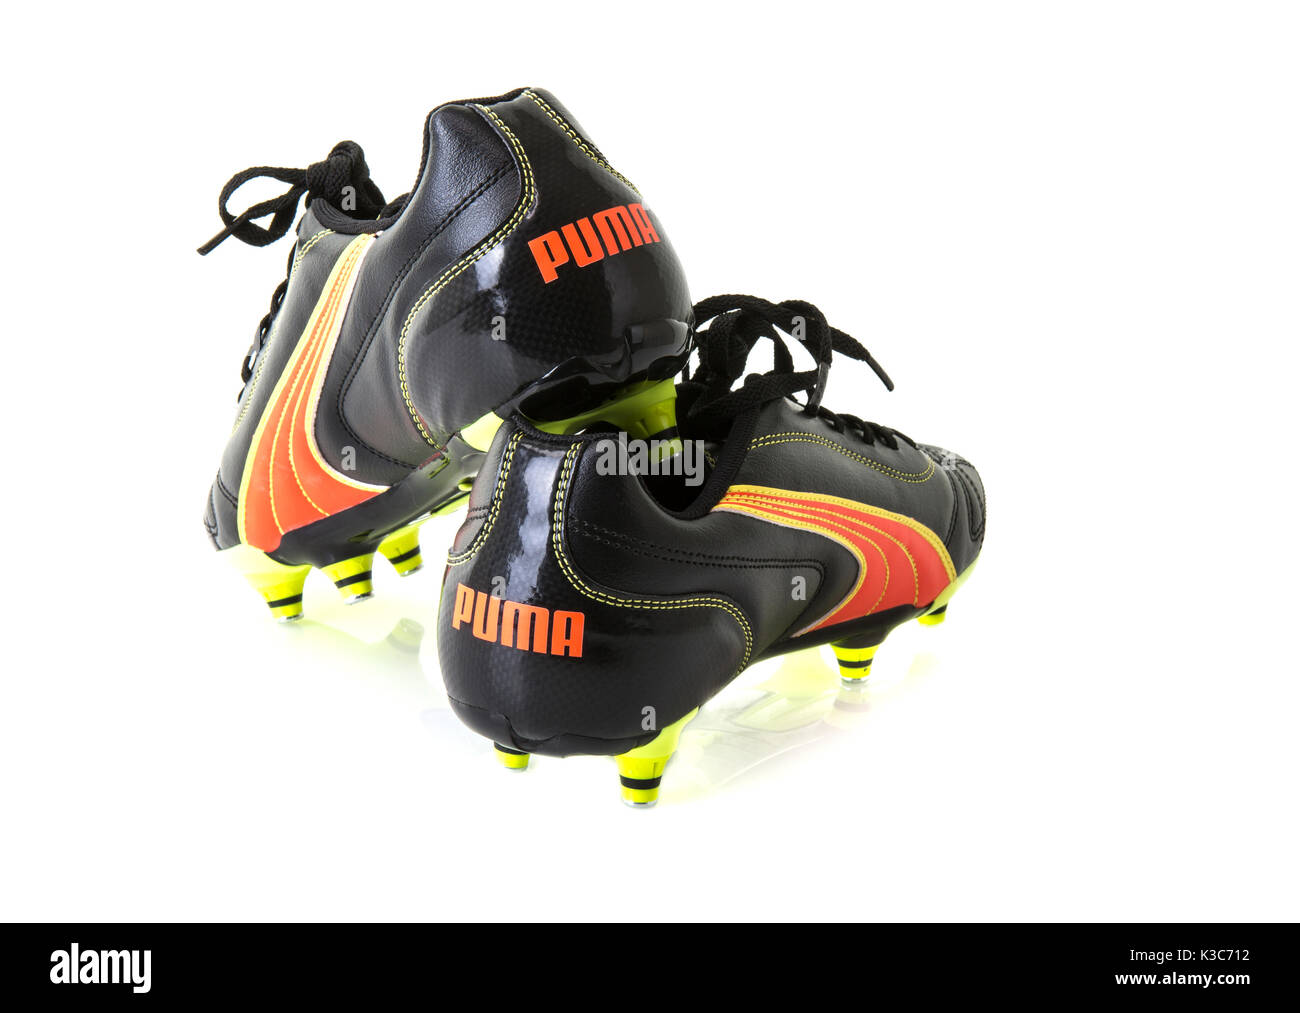 dac96e000 Puma Football Boots Stock Photos & Puma Football Boots Stock Images ...